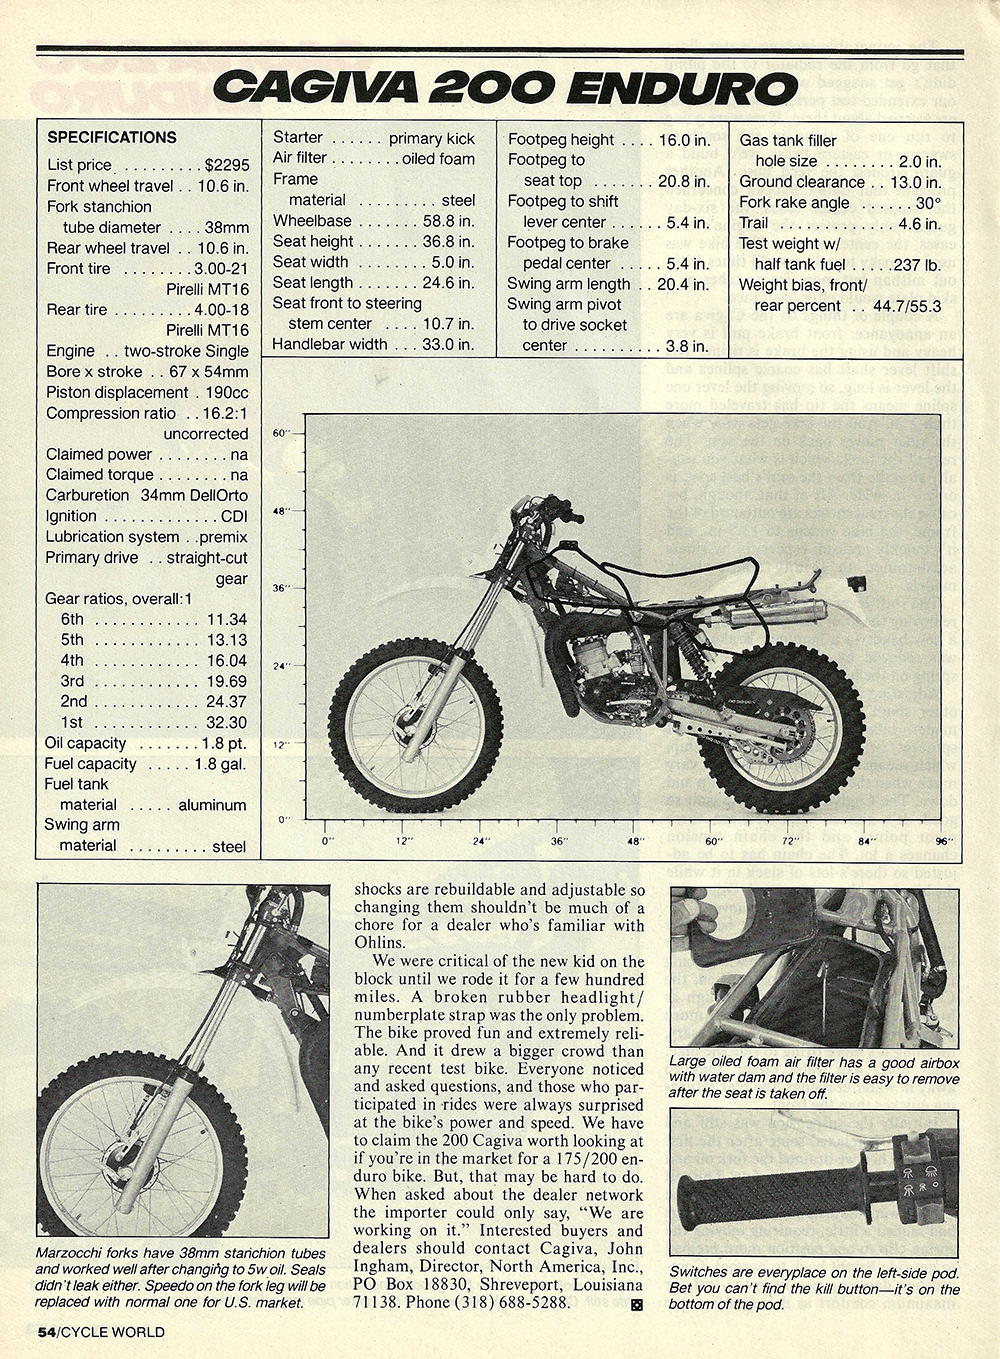 1983 Cagiva 200 Enduro road test 05.jpg